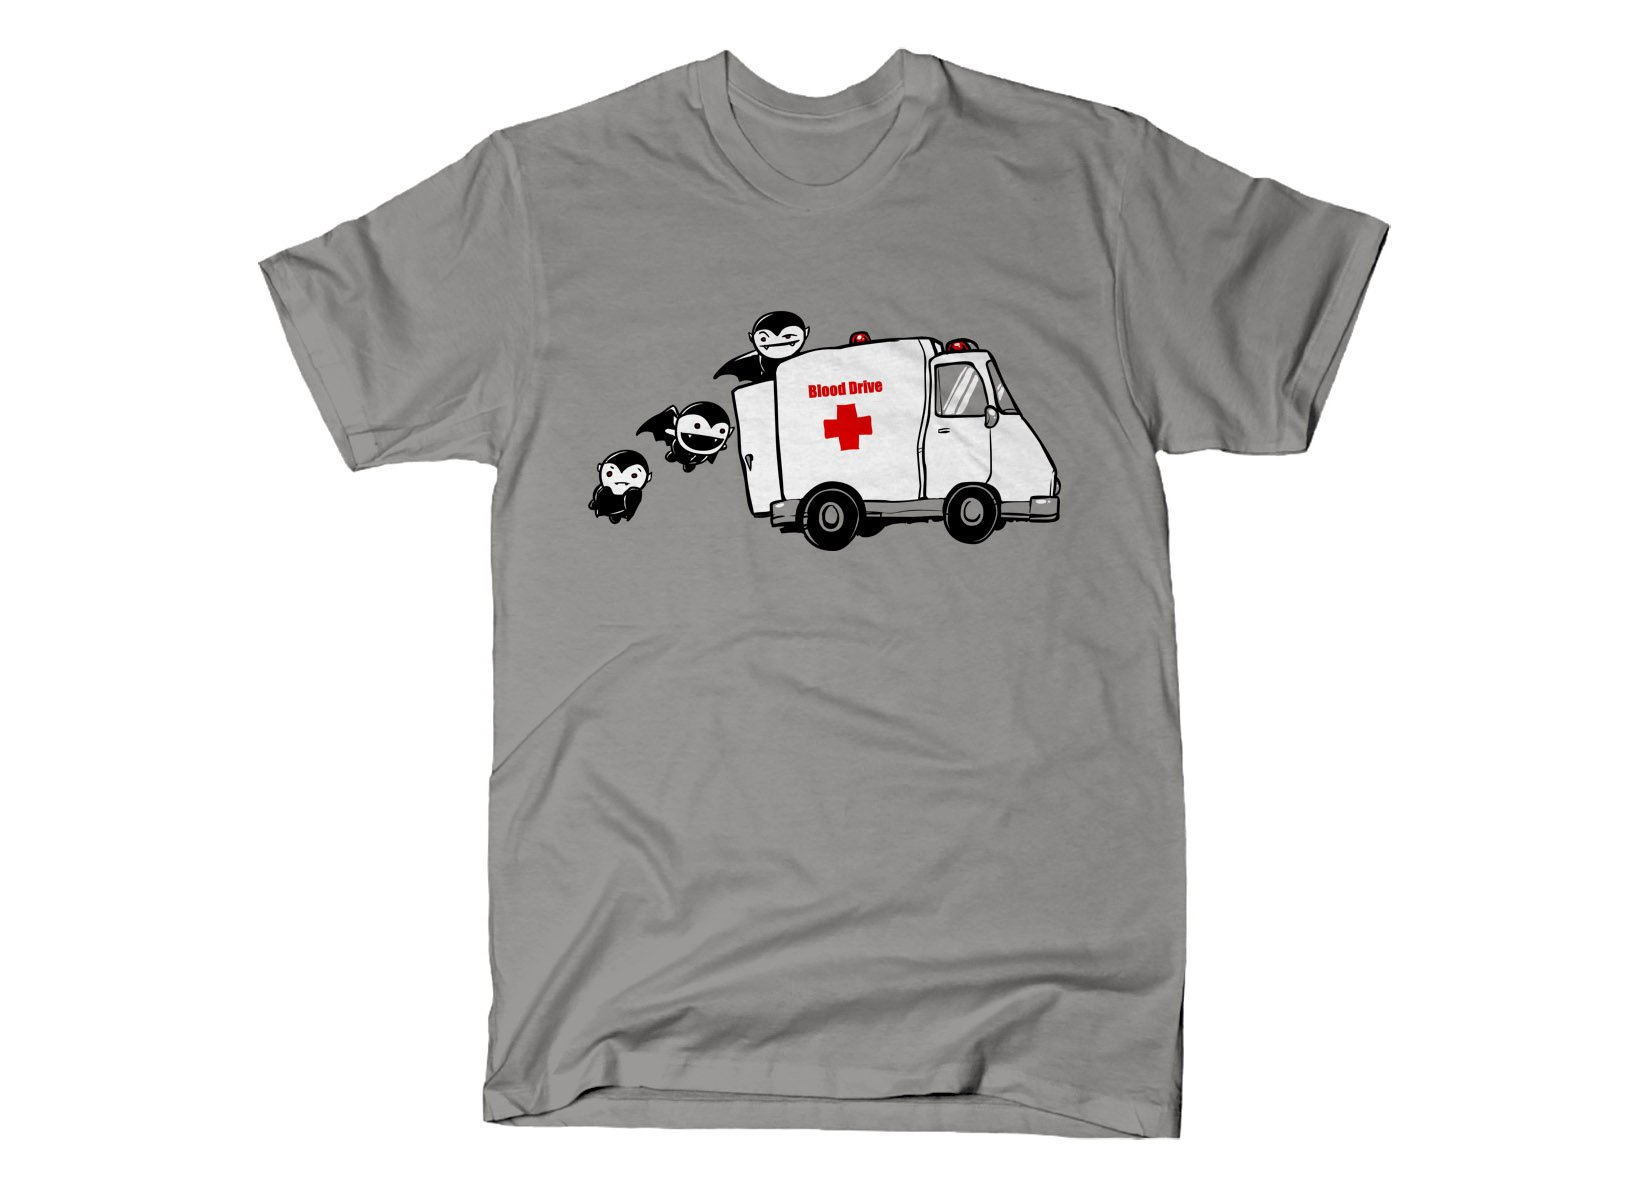 Blood Drive Vampires on Mens T-Shirt